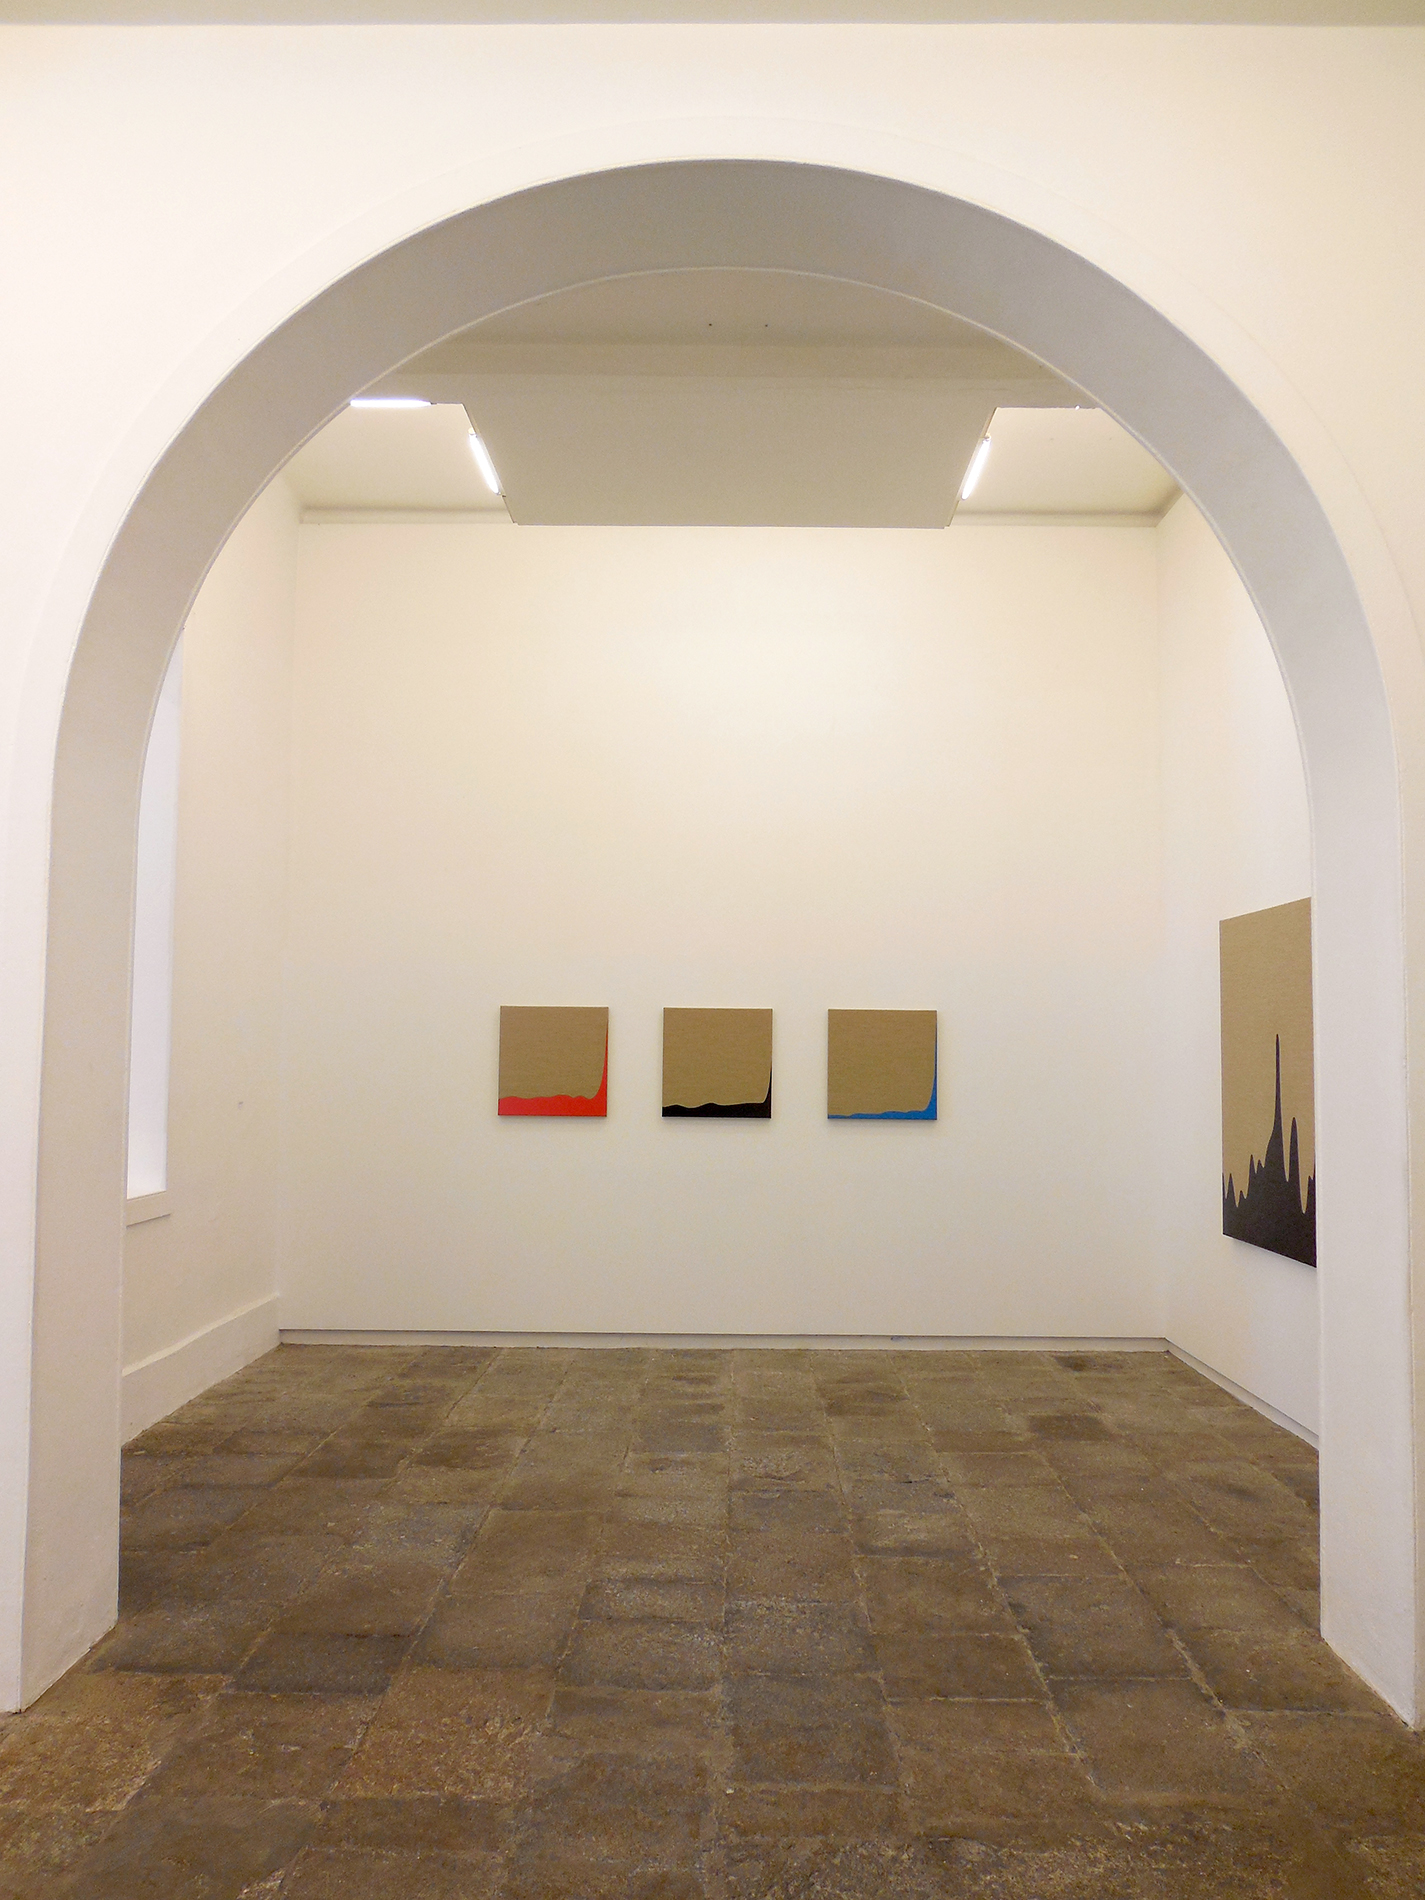 View of the exhibition at Manuel Ojeda Gallery. Las Palmas de GC, 2015.